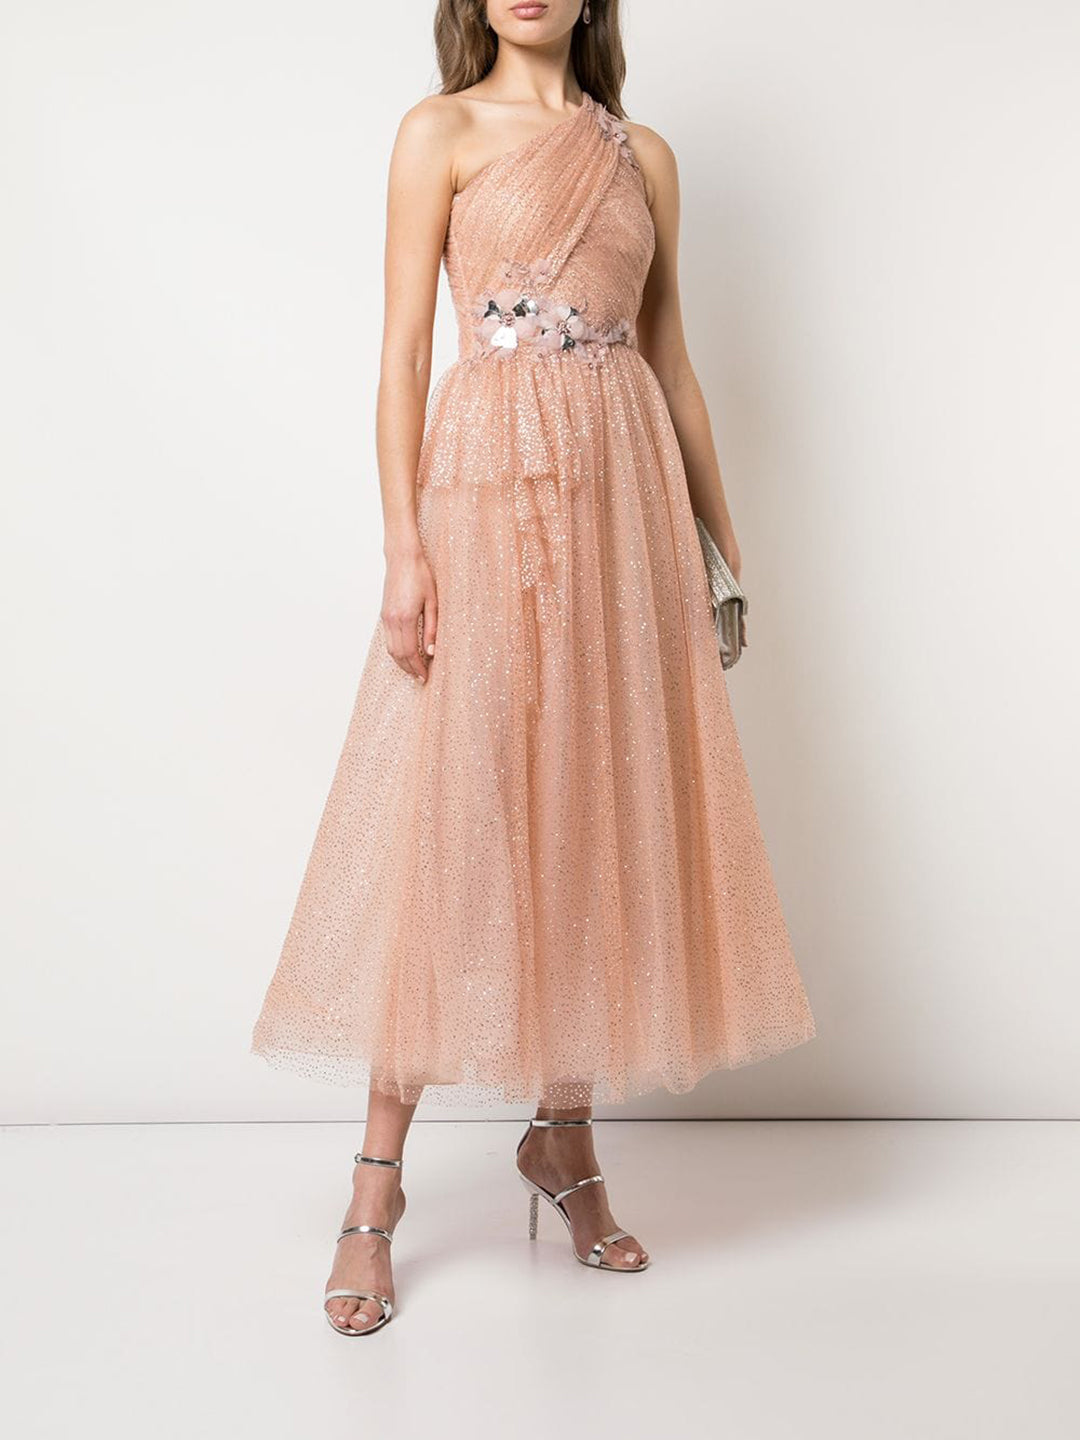 One Shoulder Glitter Tulle Dress